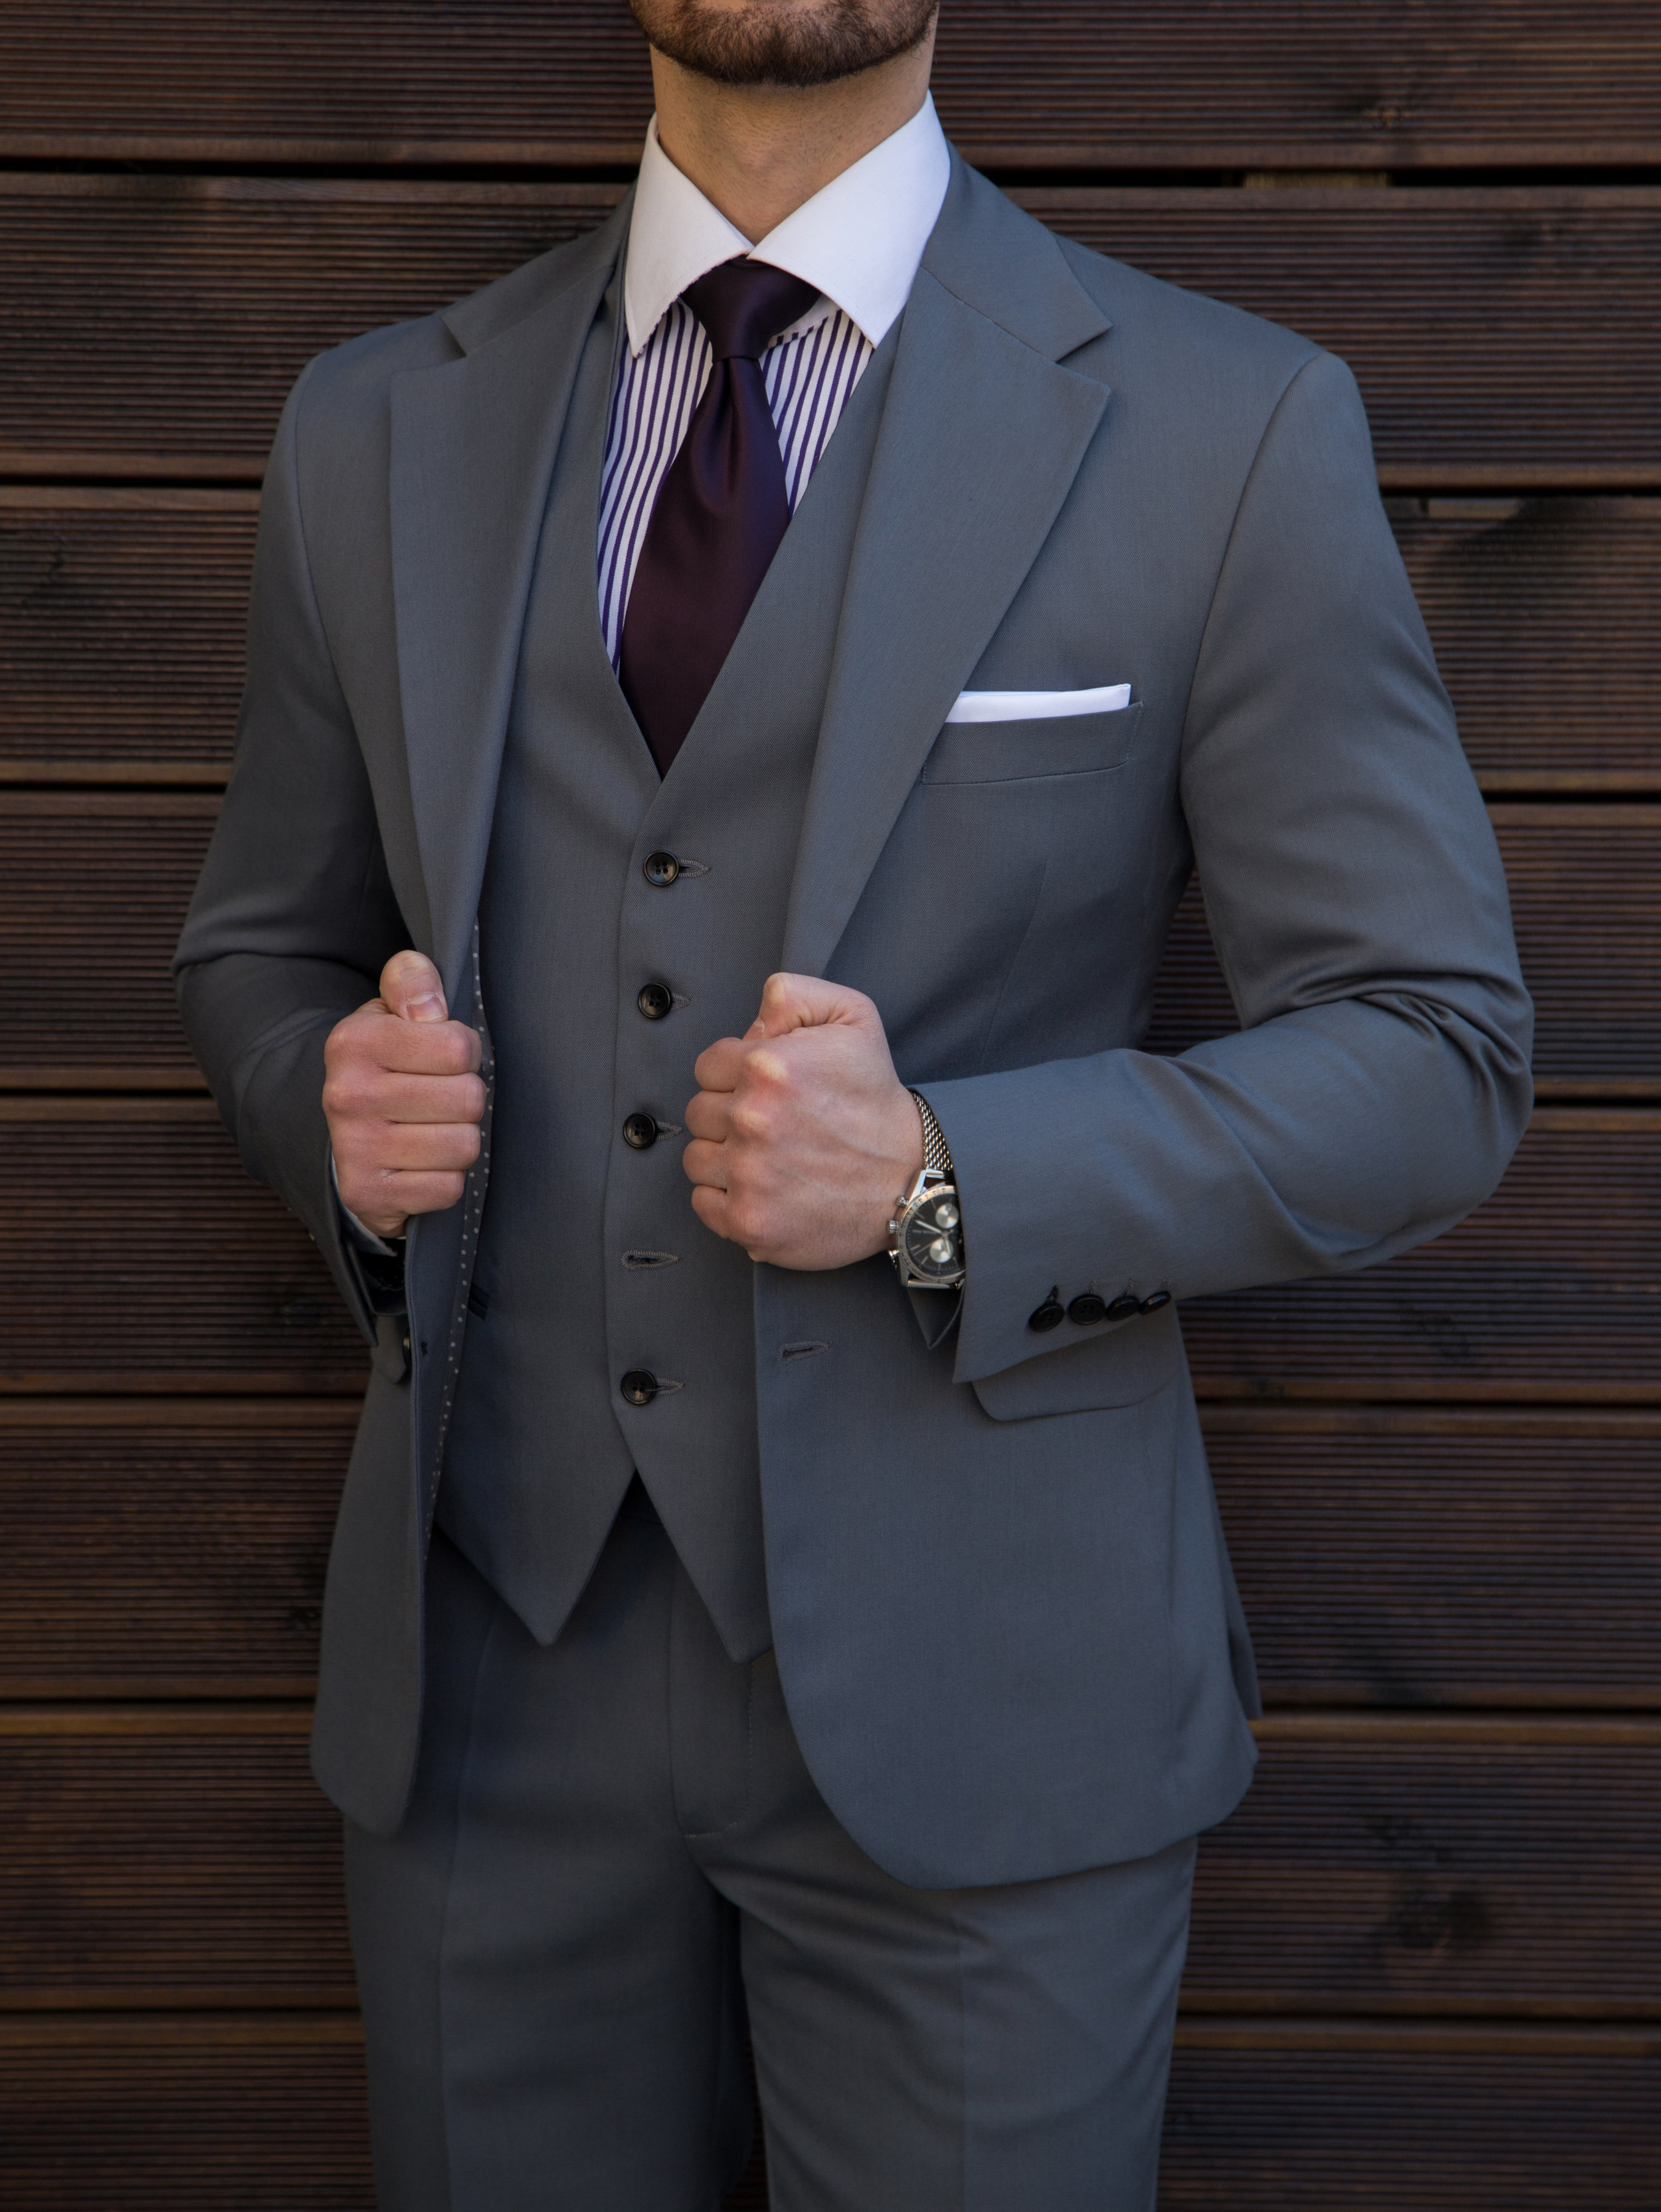 - 11. Choose a fabric according to how often you'll wear the suit. The most versatile option is a soft, but durable wool like super 120 (a measure of yarn fineness; higher than 120 is generally too delicate for daily use).12. When it comes to wearing an undershirt, be sure to avoid letting it peak through in any way as it cheapens the overall look no matter how well everything fits. With many deep neck options available, pull for those with any open collar look.13. Vests are not only a practical touch for colder climates, but also adds a formal touch that can set you apart. It is best worn with a single-breasted suit so it is actually visible. Also, you can never go wrong with a vest hat combo to really add style to your overall look.14. The collar of the jacket should rest against your shirt collar, which should in turn be resting against the back of your neck. All of these should touch lightly with no significant gaps in between. A gap can mean the jacket is too loose and bunching under the back of the jack collar can mean its too tight.15. Be sure to slim the sleeves of your jacket to decrease the wrist gap and baggy wrinkles near the elbow. Most people go for the taper look only on the trousers but providing the sleeves a similar look will add to your polished look.